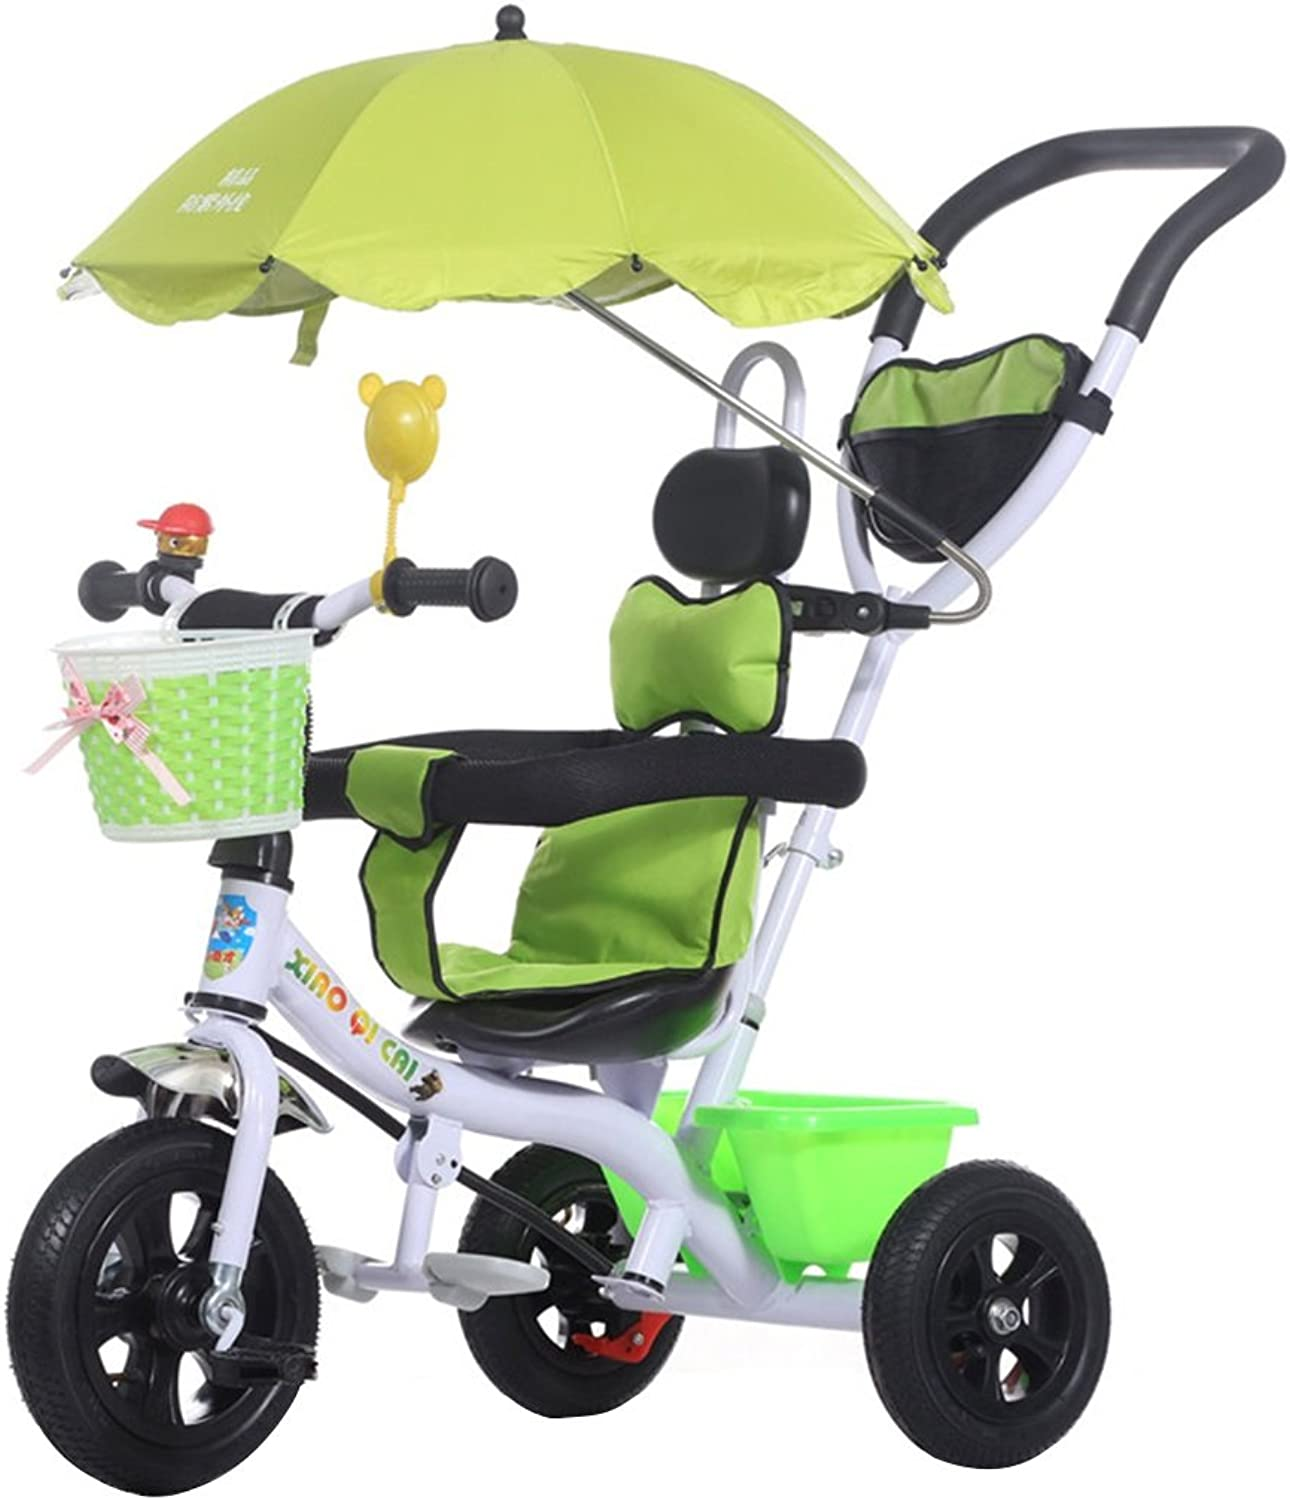 Kids' Tricycles Kids Tricycle Stroller Baby Folding UV Inflatable Wheel Bike 15 Years Old Baby Stroller Green 25kg Kid's Outdoor Riding